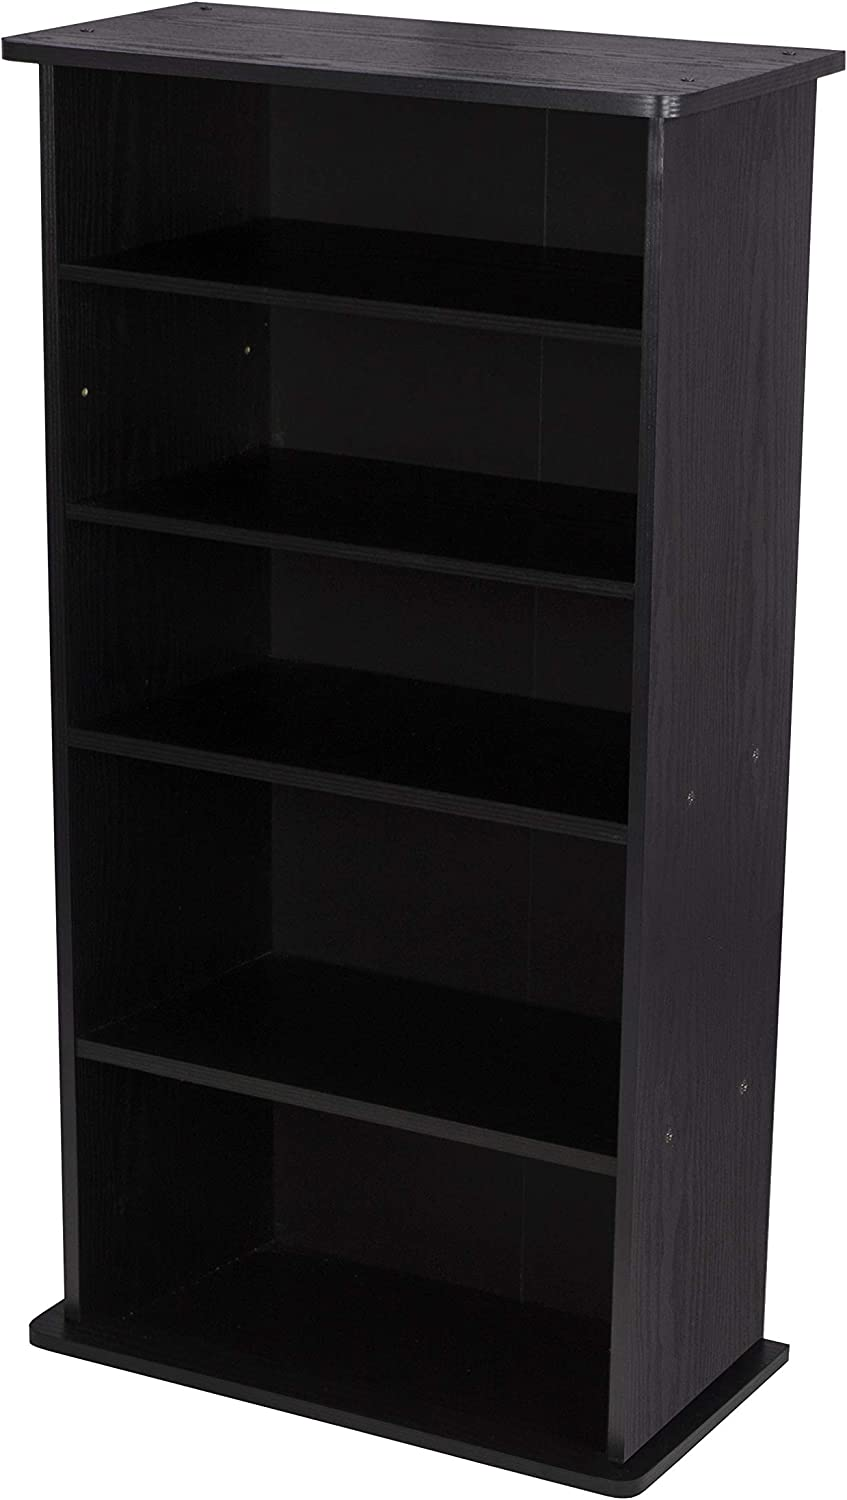 Atlantic Drawbridge XL Media Cabinet - Holds 240 CDs, Wide Stable Base, 4 Adjustable, 2 Fixed Deeper Shelves, 36 X 19 X 10 inch PN37936251 in Black